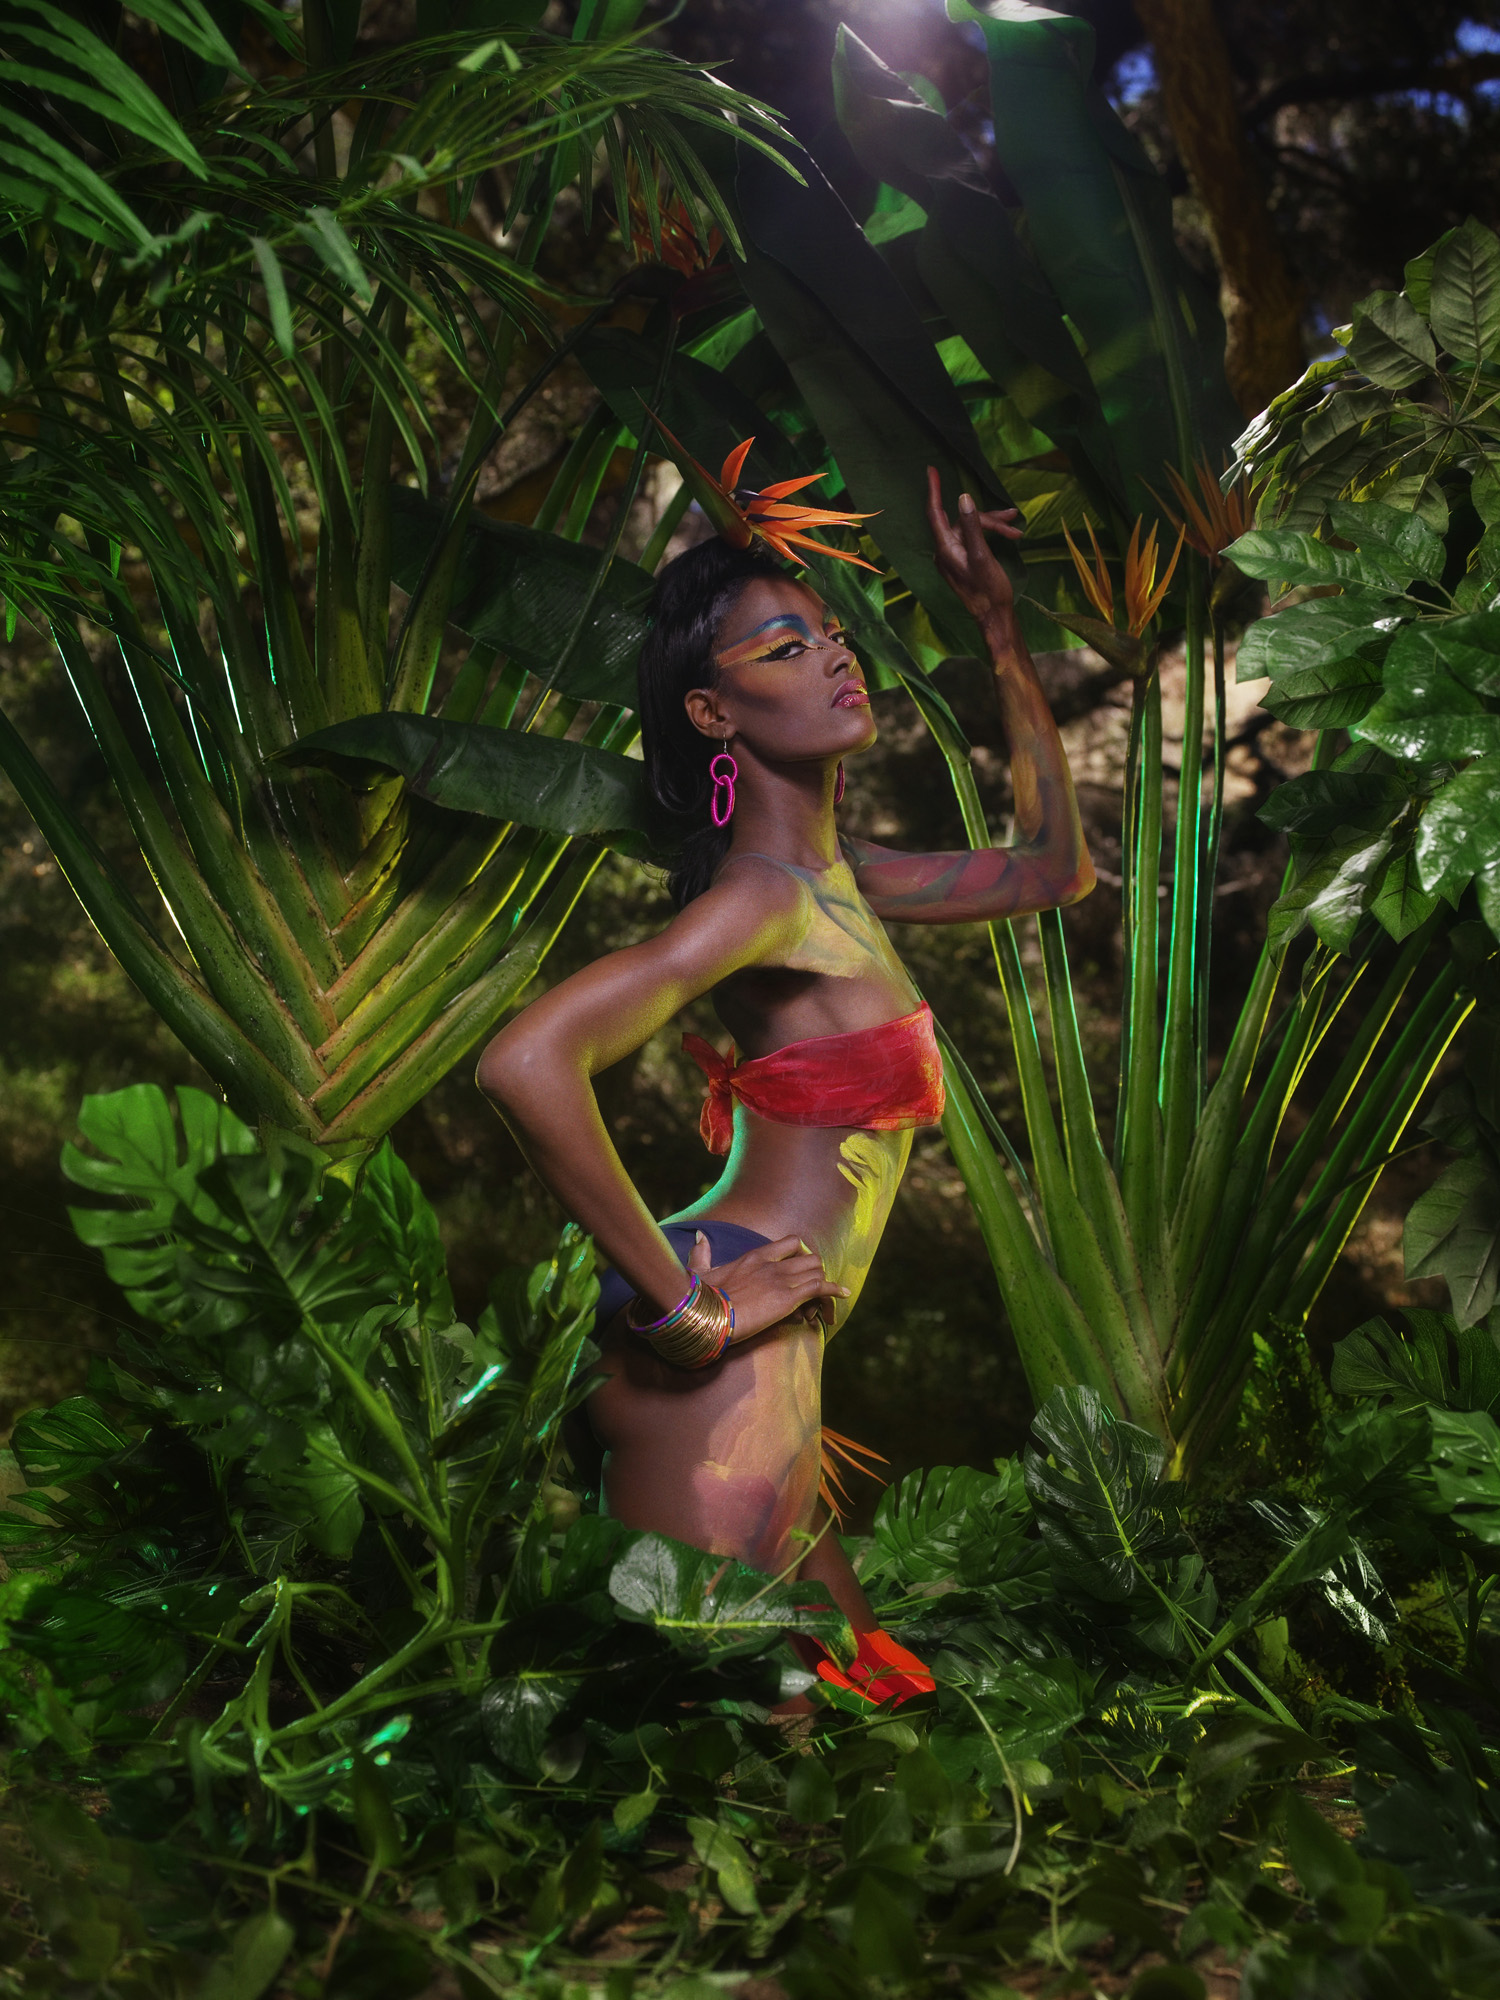 The-Girl-Who-Goes-Bald-The-girls-participate-in-a-runway-challenge-and-pose-off-in-a-jungle-photo-sh.jpg